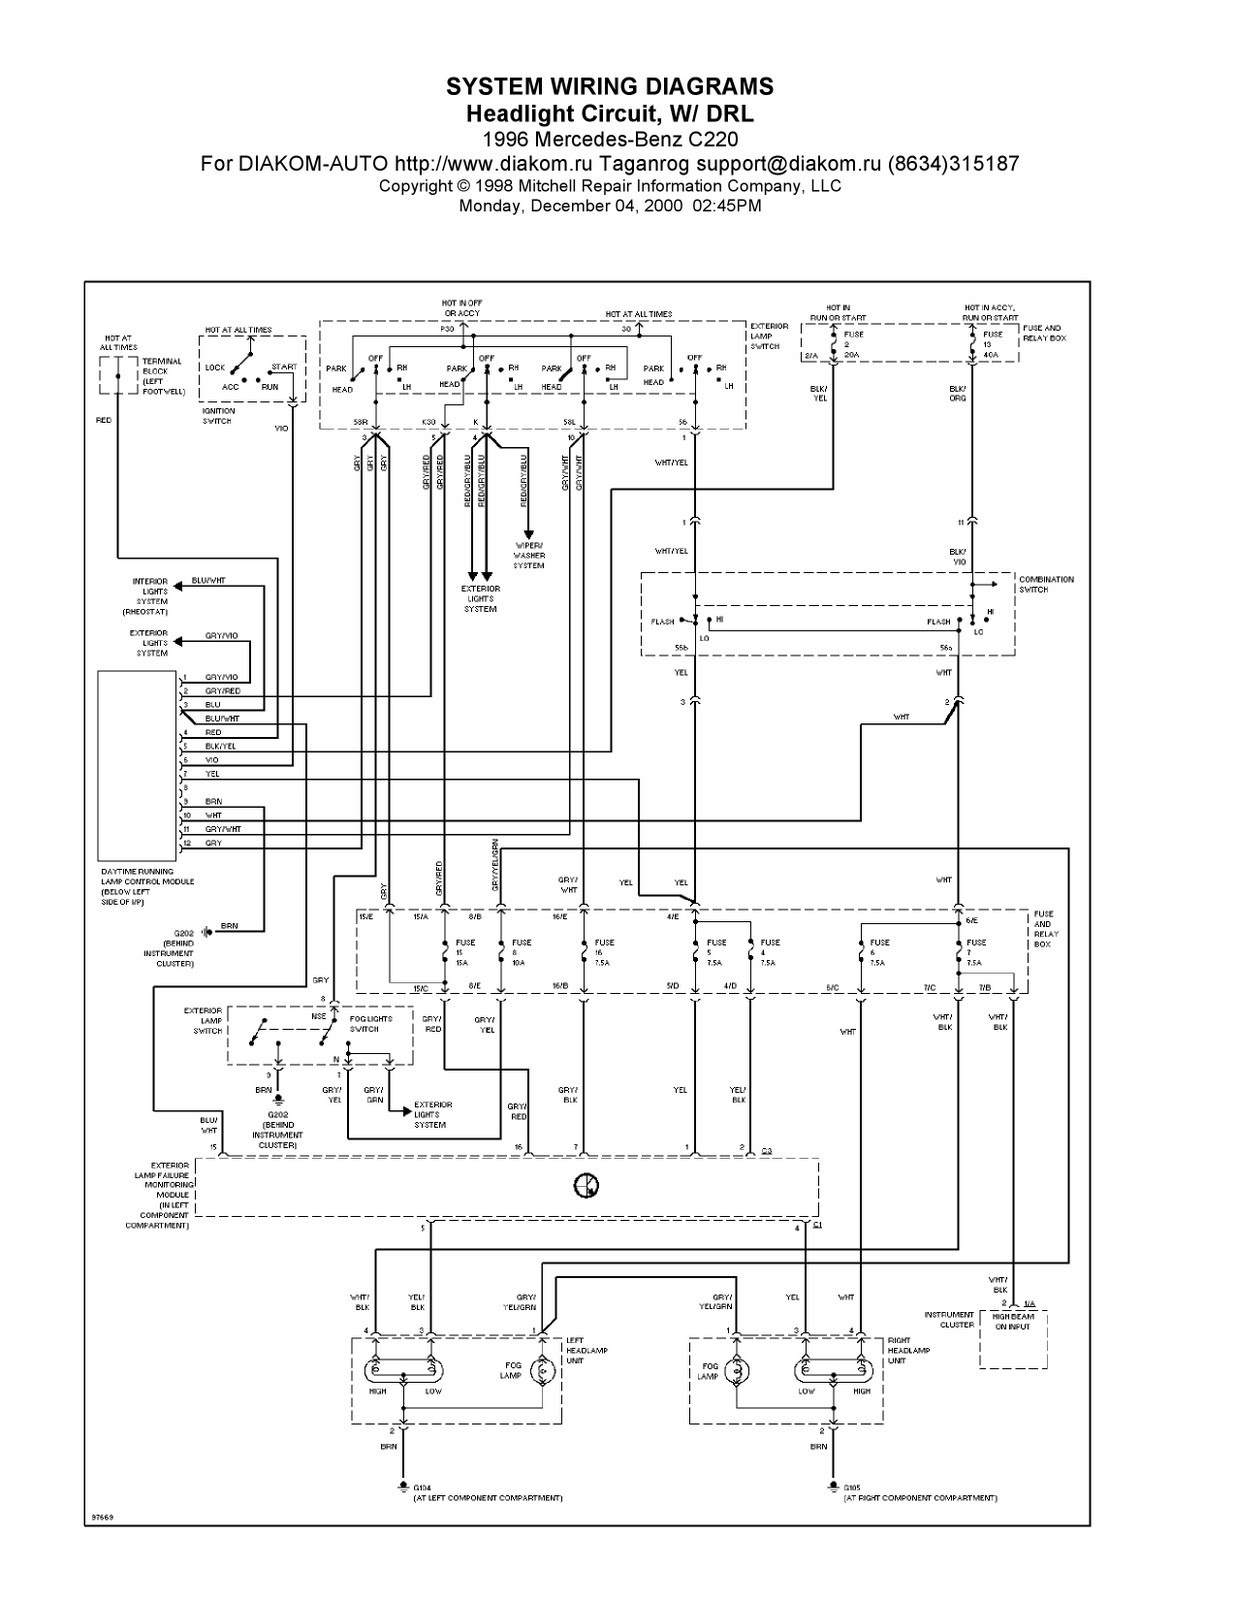 manual  mercedes benz  system wiring diagrams